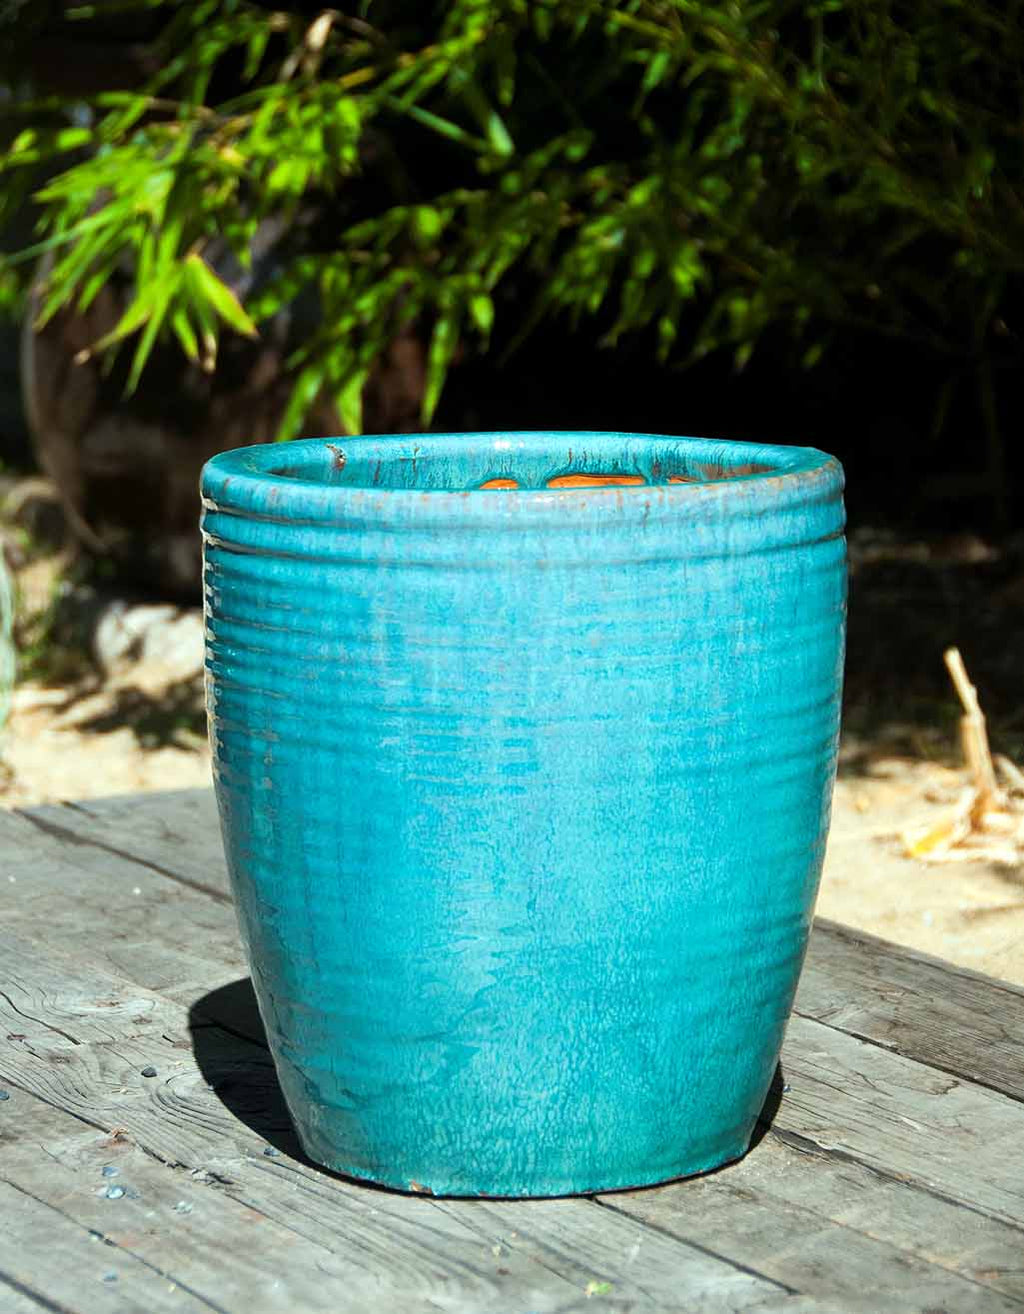 Cabana Planter in Turquoise